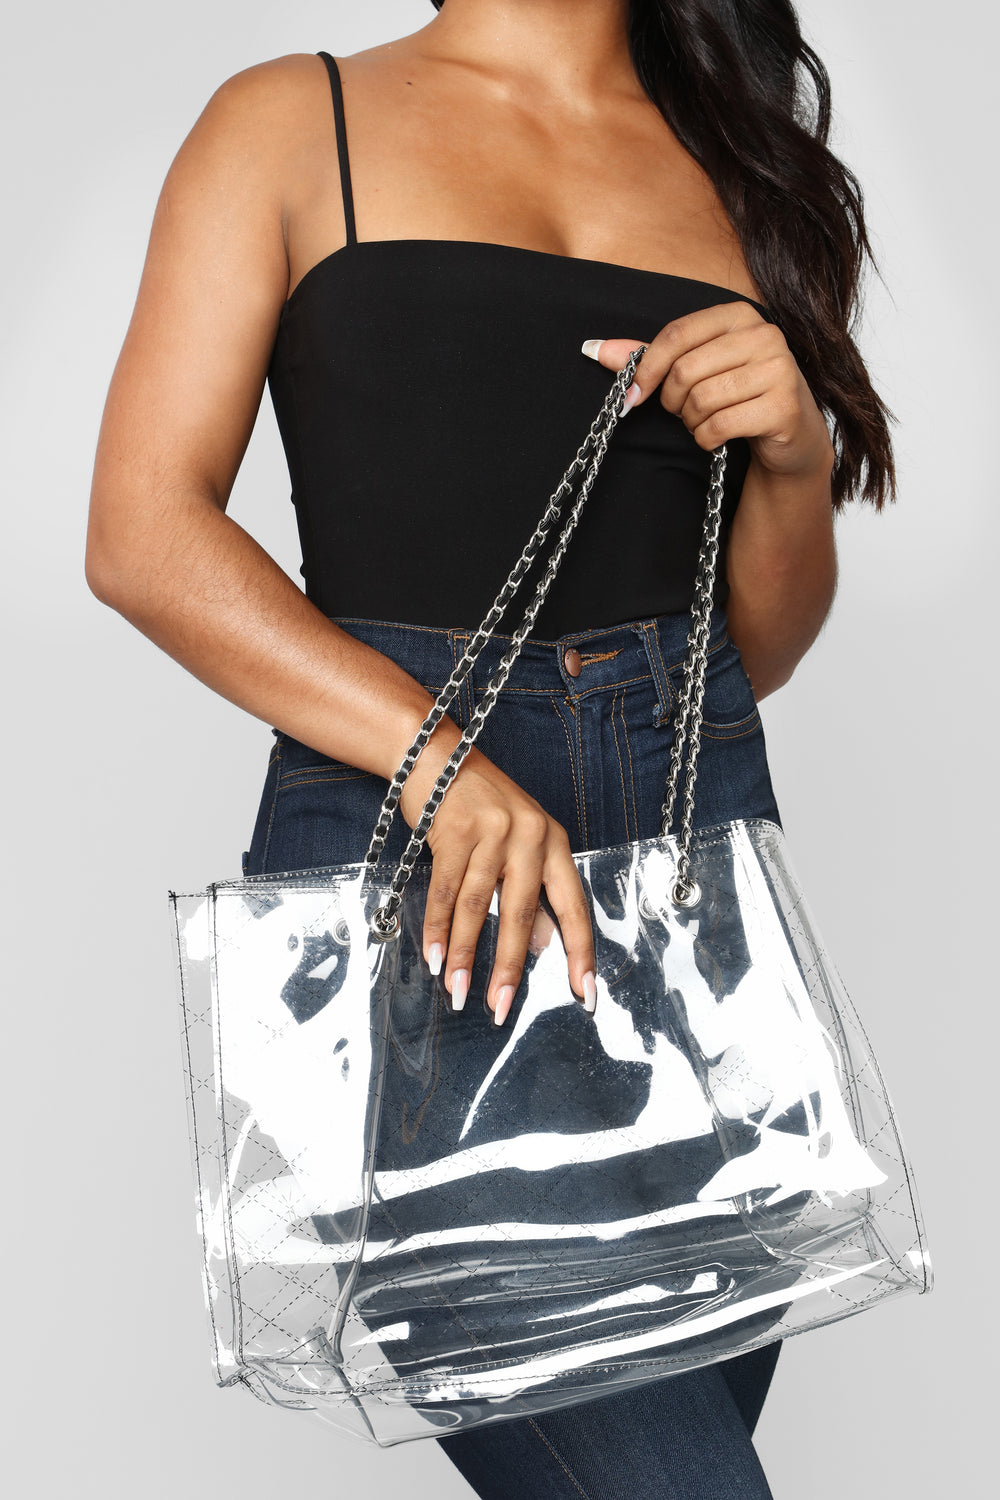 Clear And Solid Minded Bag - Black